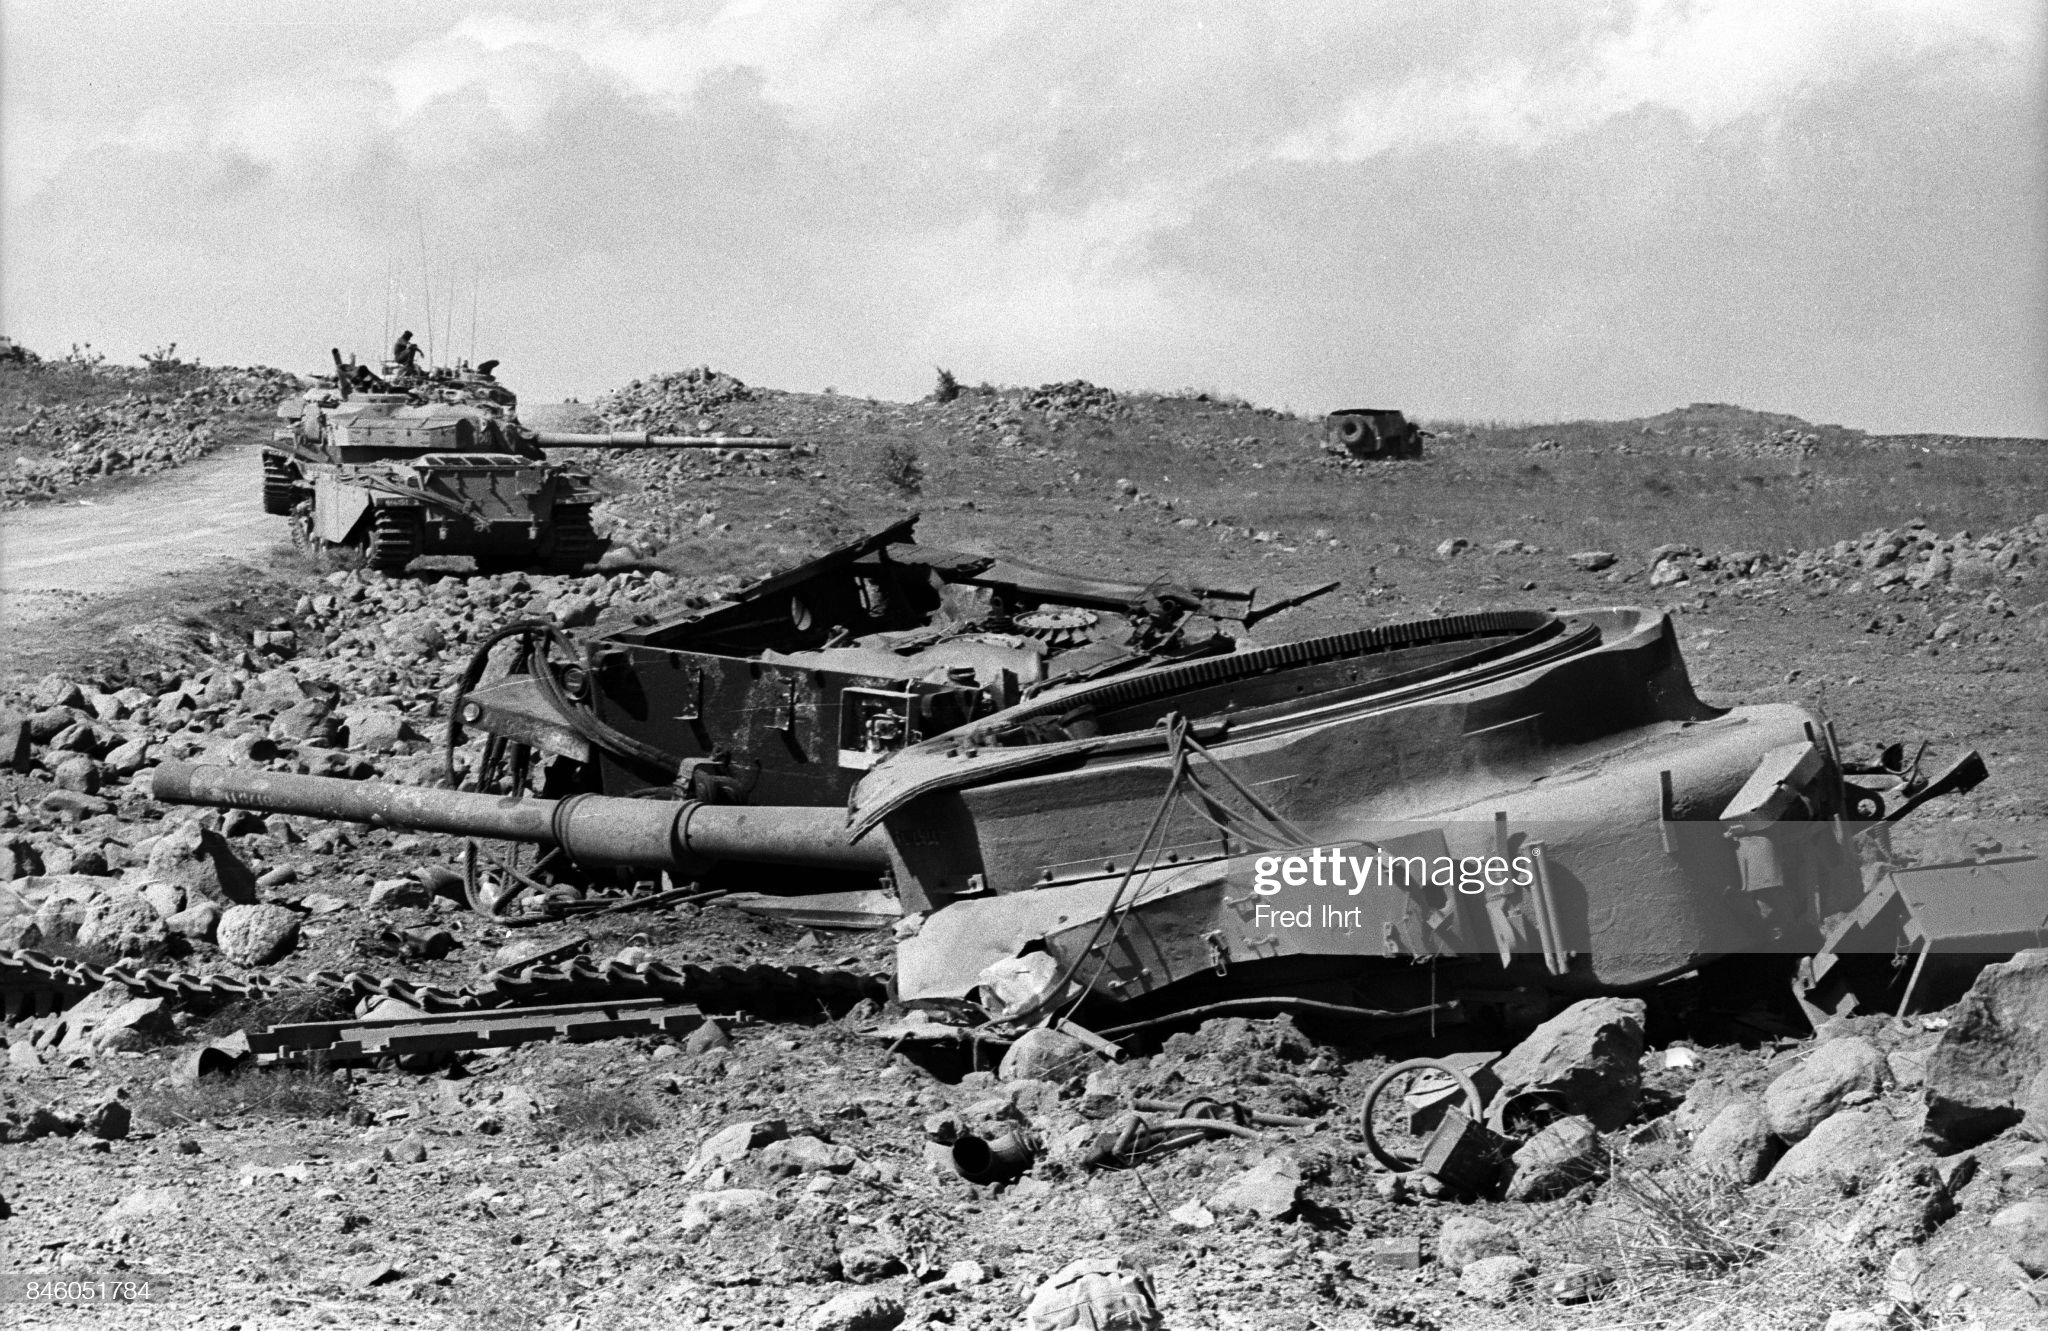 https://media.gettyimages.com/photos/destroyed-tank-in-the-foreground-soldiers-in-working-tanks-in-the-picture-id846051784?s=2048x2048